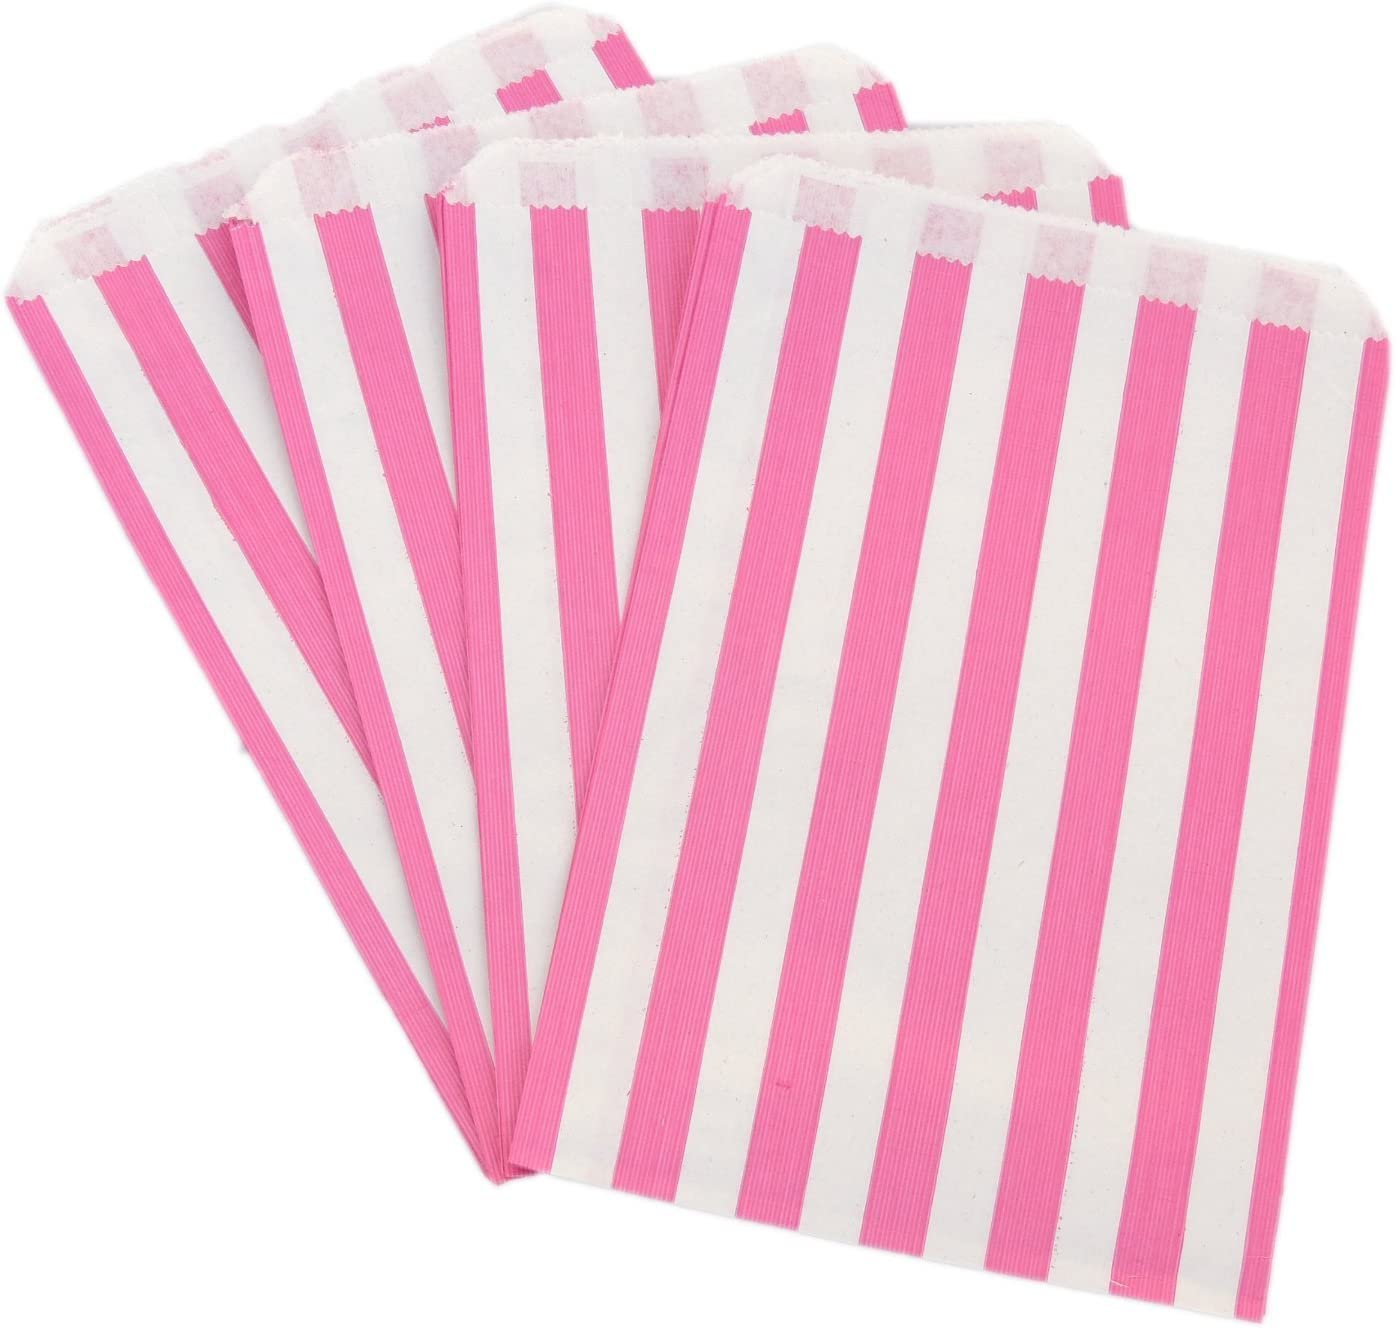 "1000 Blue Candy Stripe Paper Wedding Sweet Bar Gift Shop Food Party Bags 7/"" x 9/"""